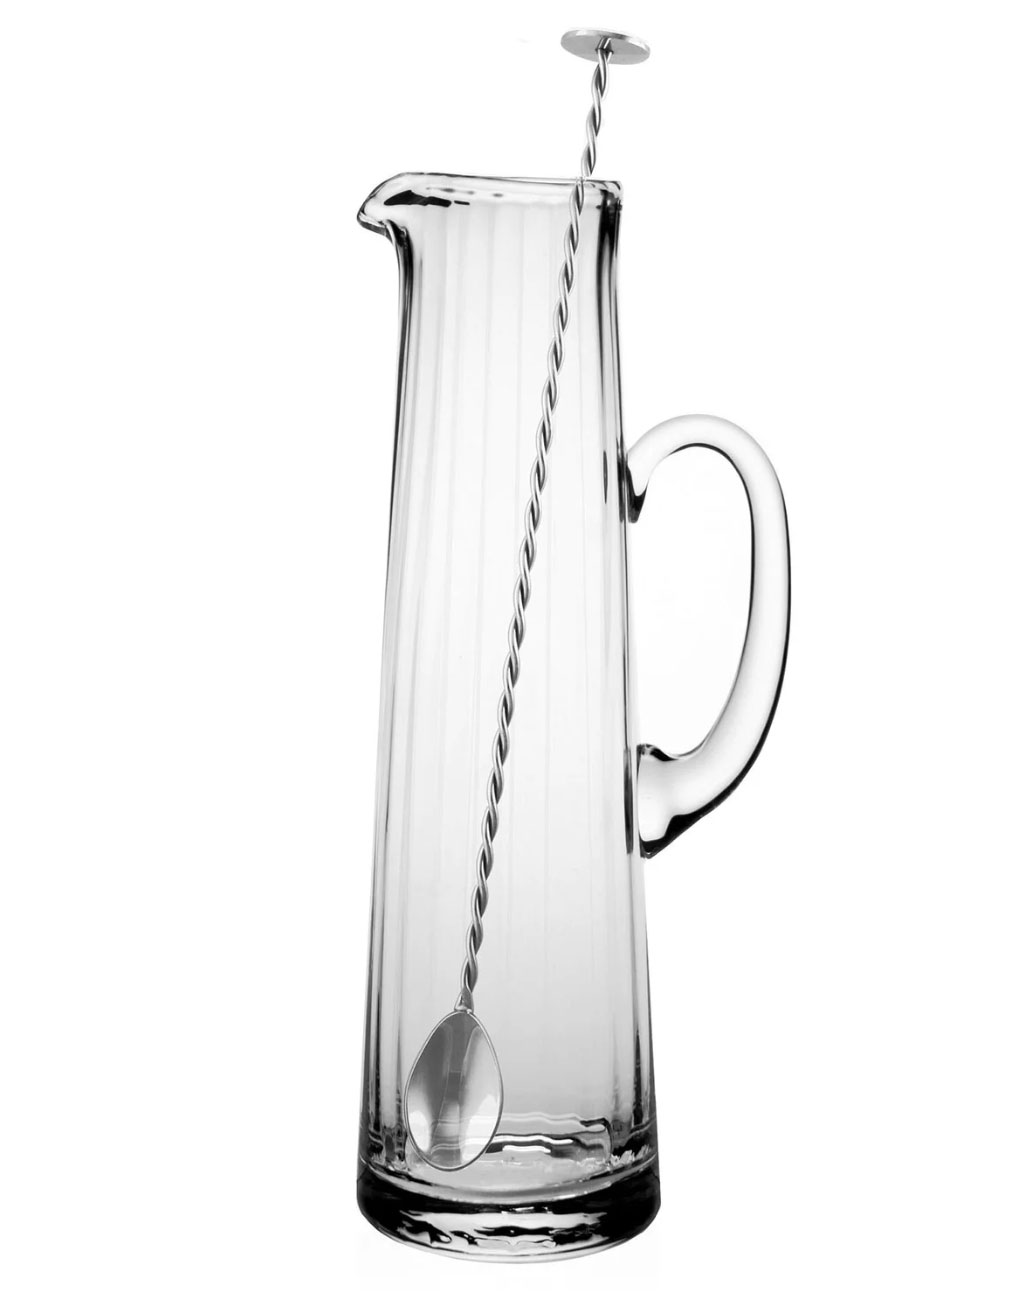 Cocktail jug